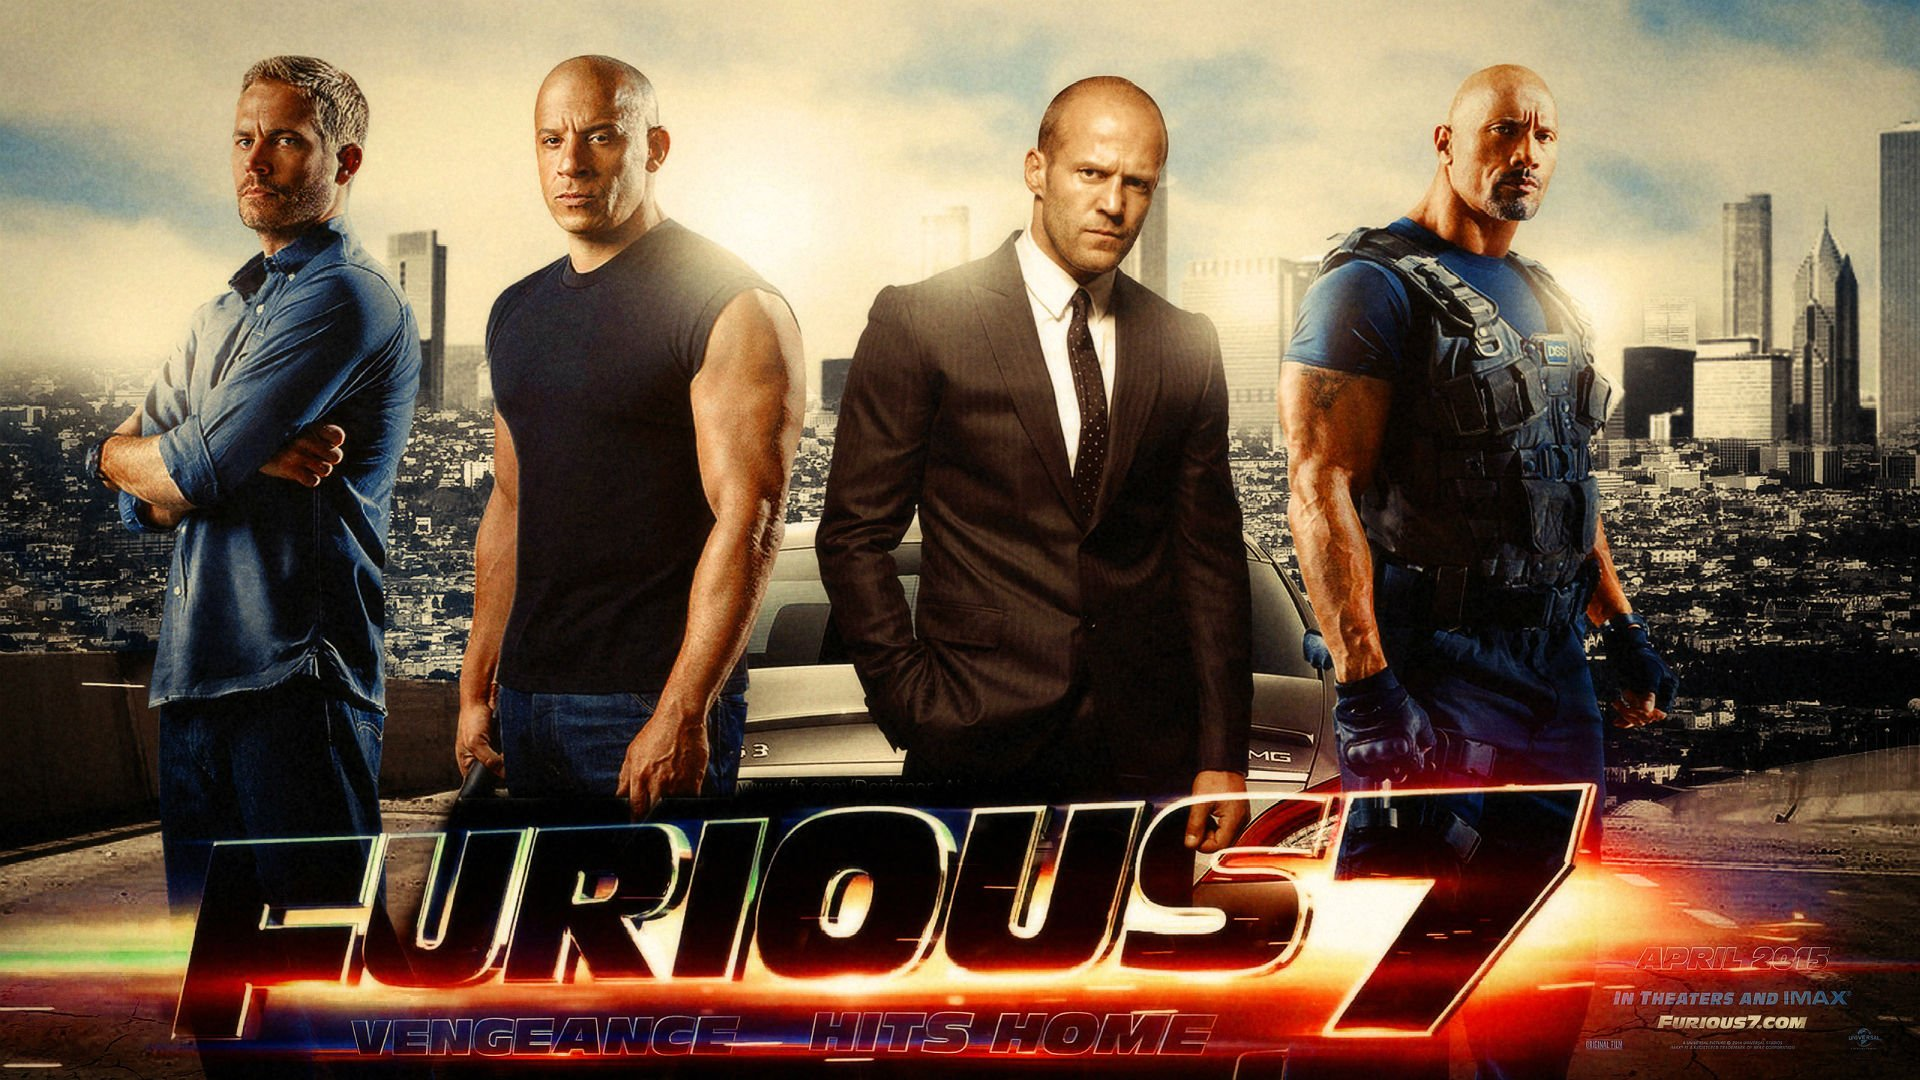 fast and furious 7 2015 hd full movie dailymotion